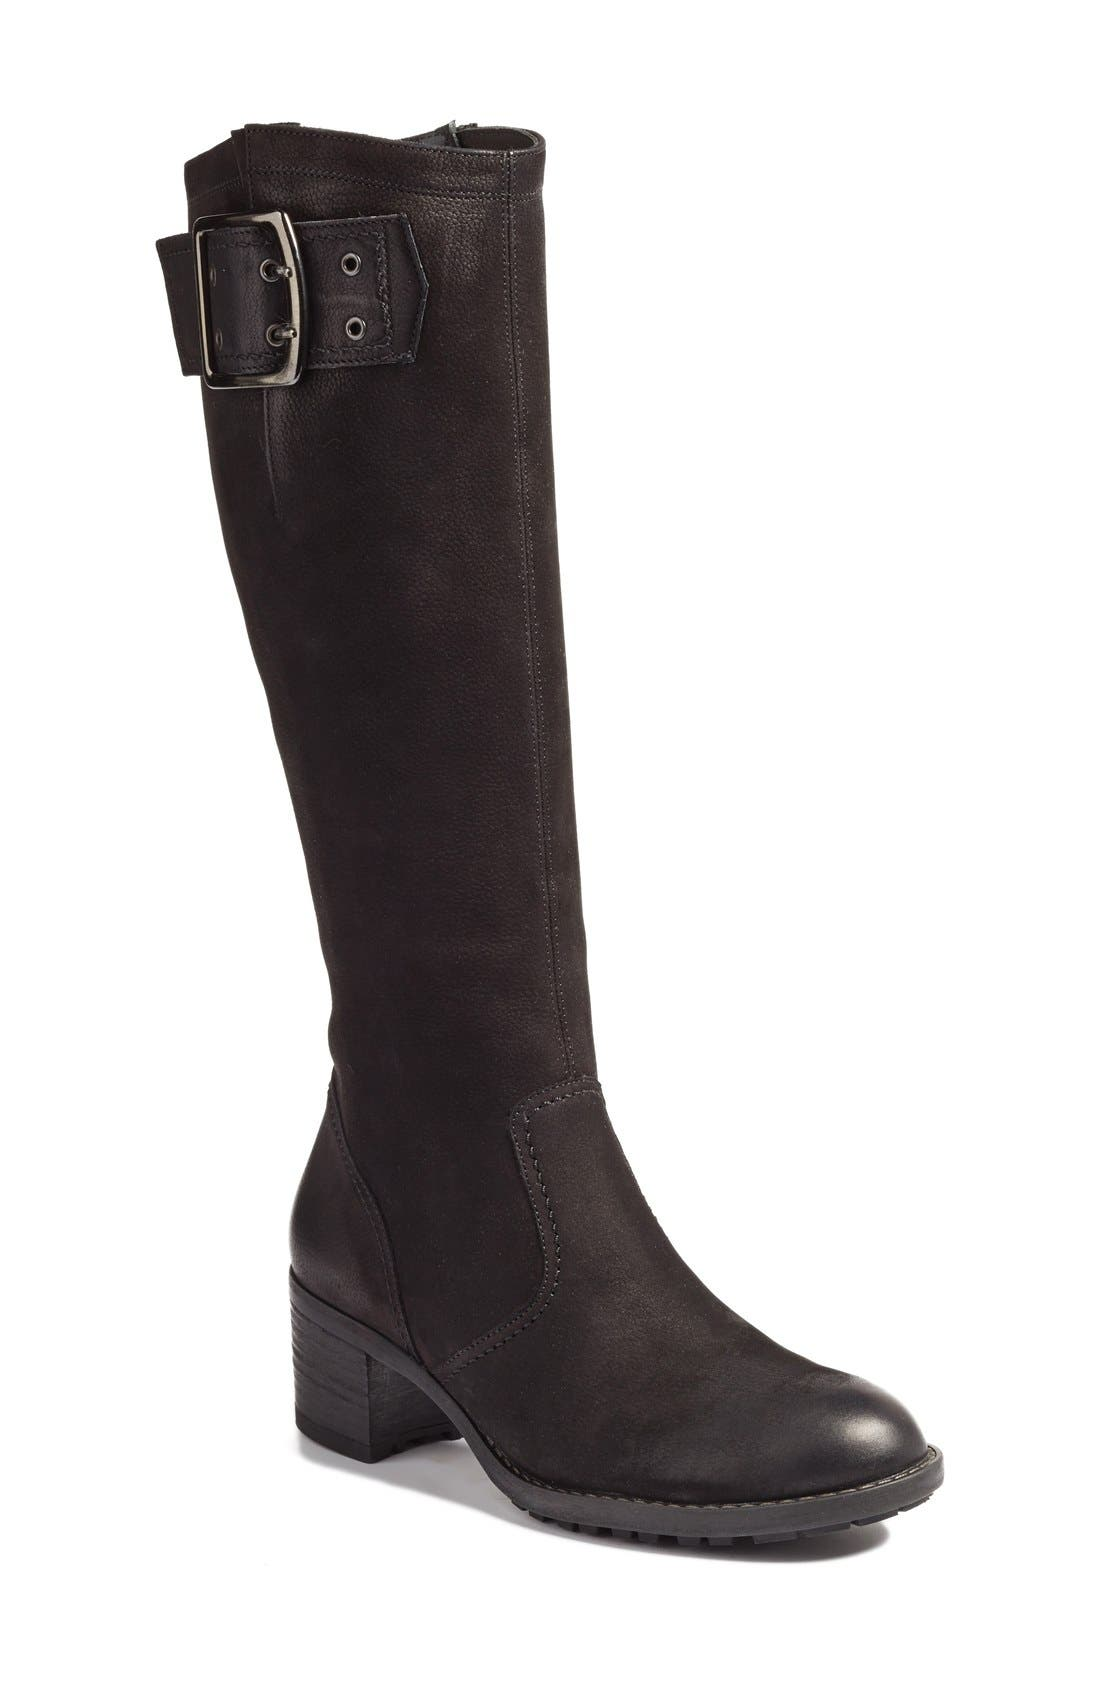 Alternate Image 1 Selected - Paul Green Kendra Knee High Buckle Boot (Women)